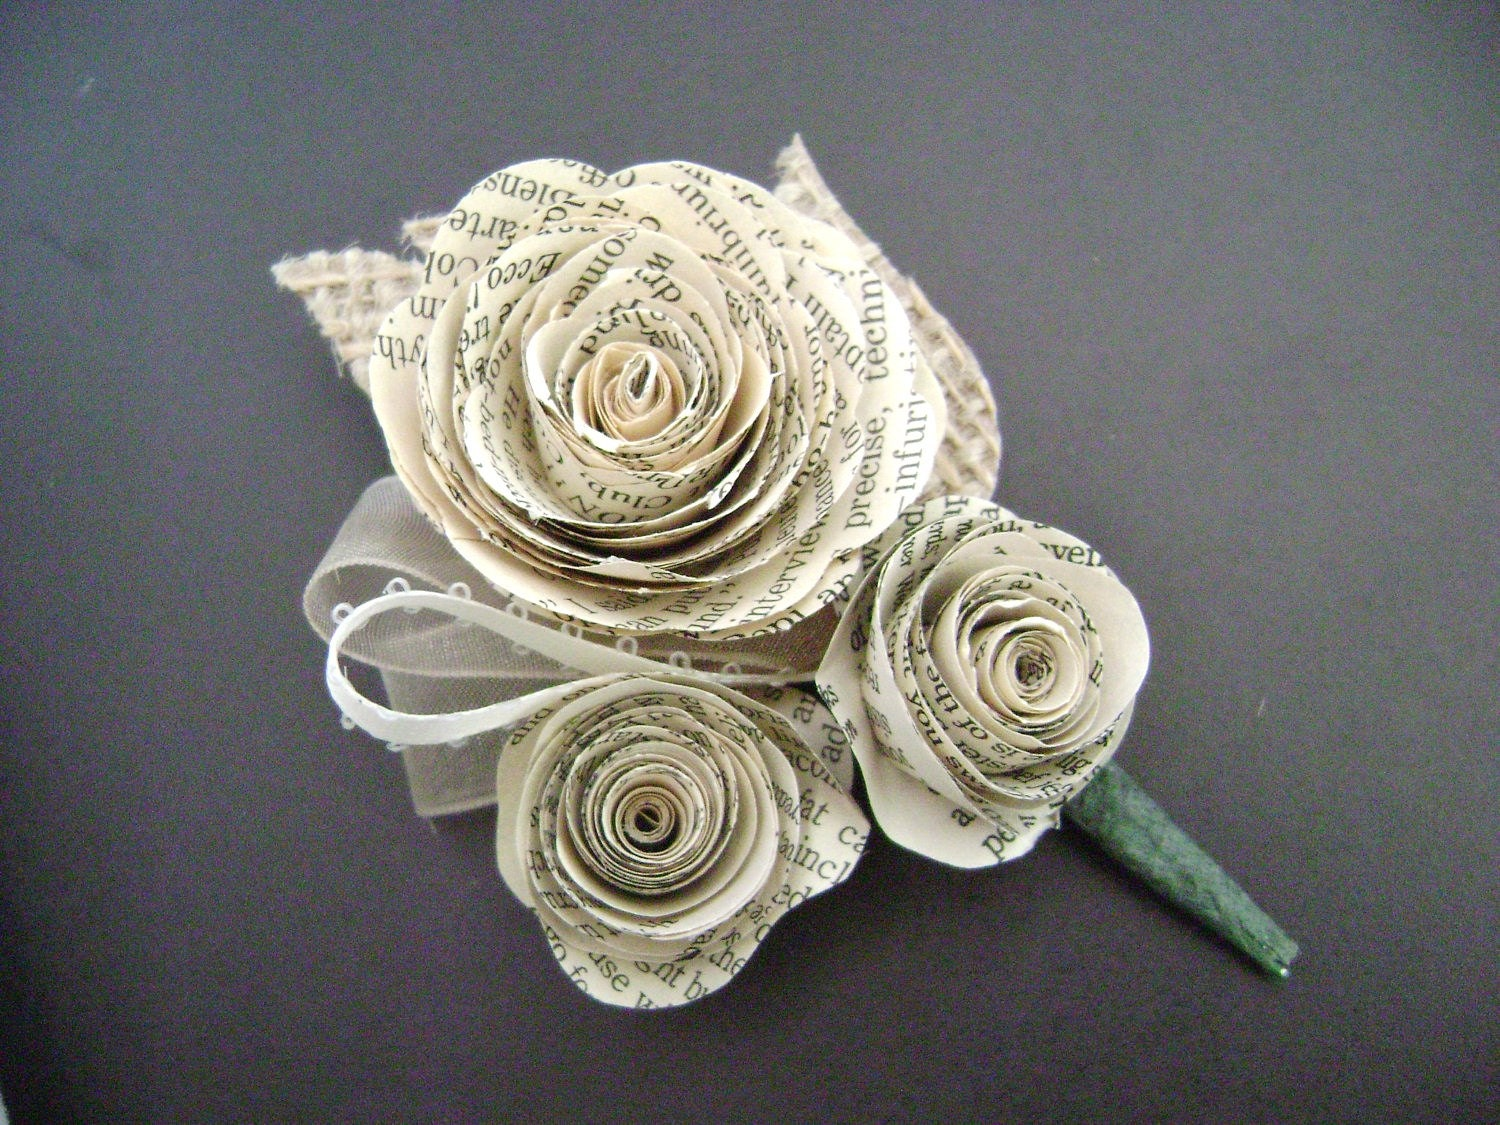 Spiral Rose Boutonniere Buttonhole For Groom Or Corsage